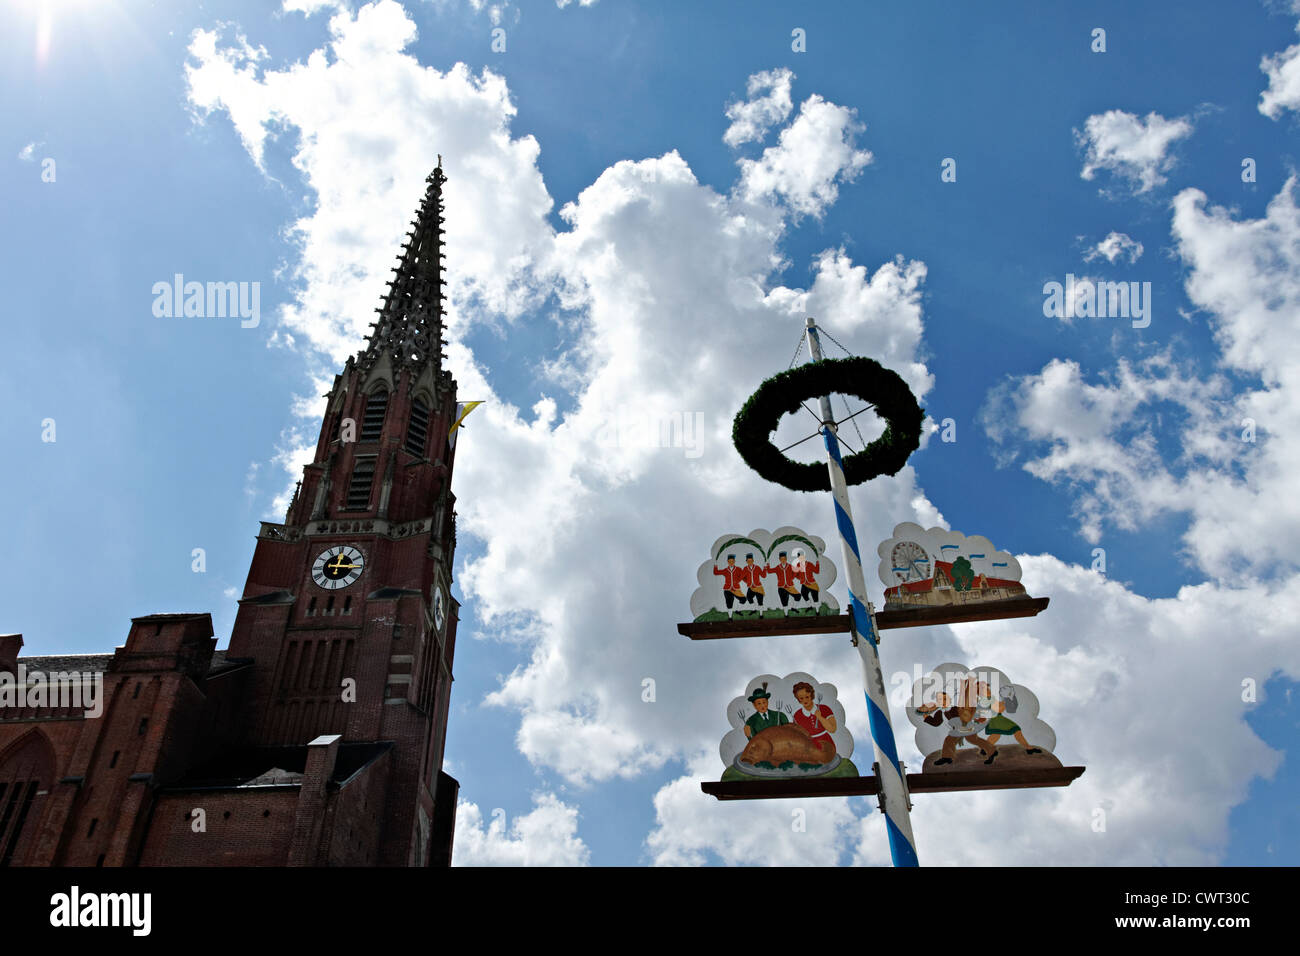 Auer Dult Maypole and Maria Hilfe Church, Munich Upper Bavaria Germany - Stock Image